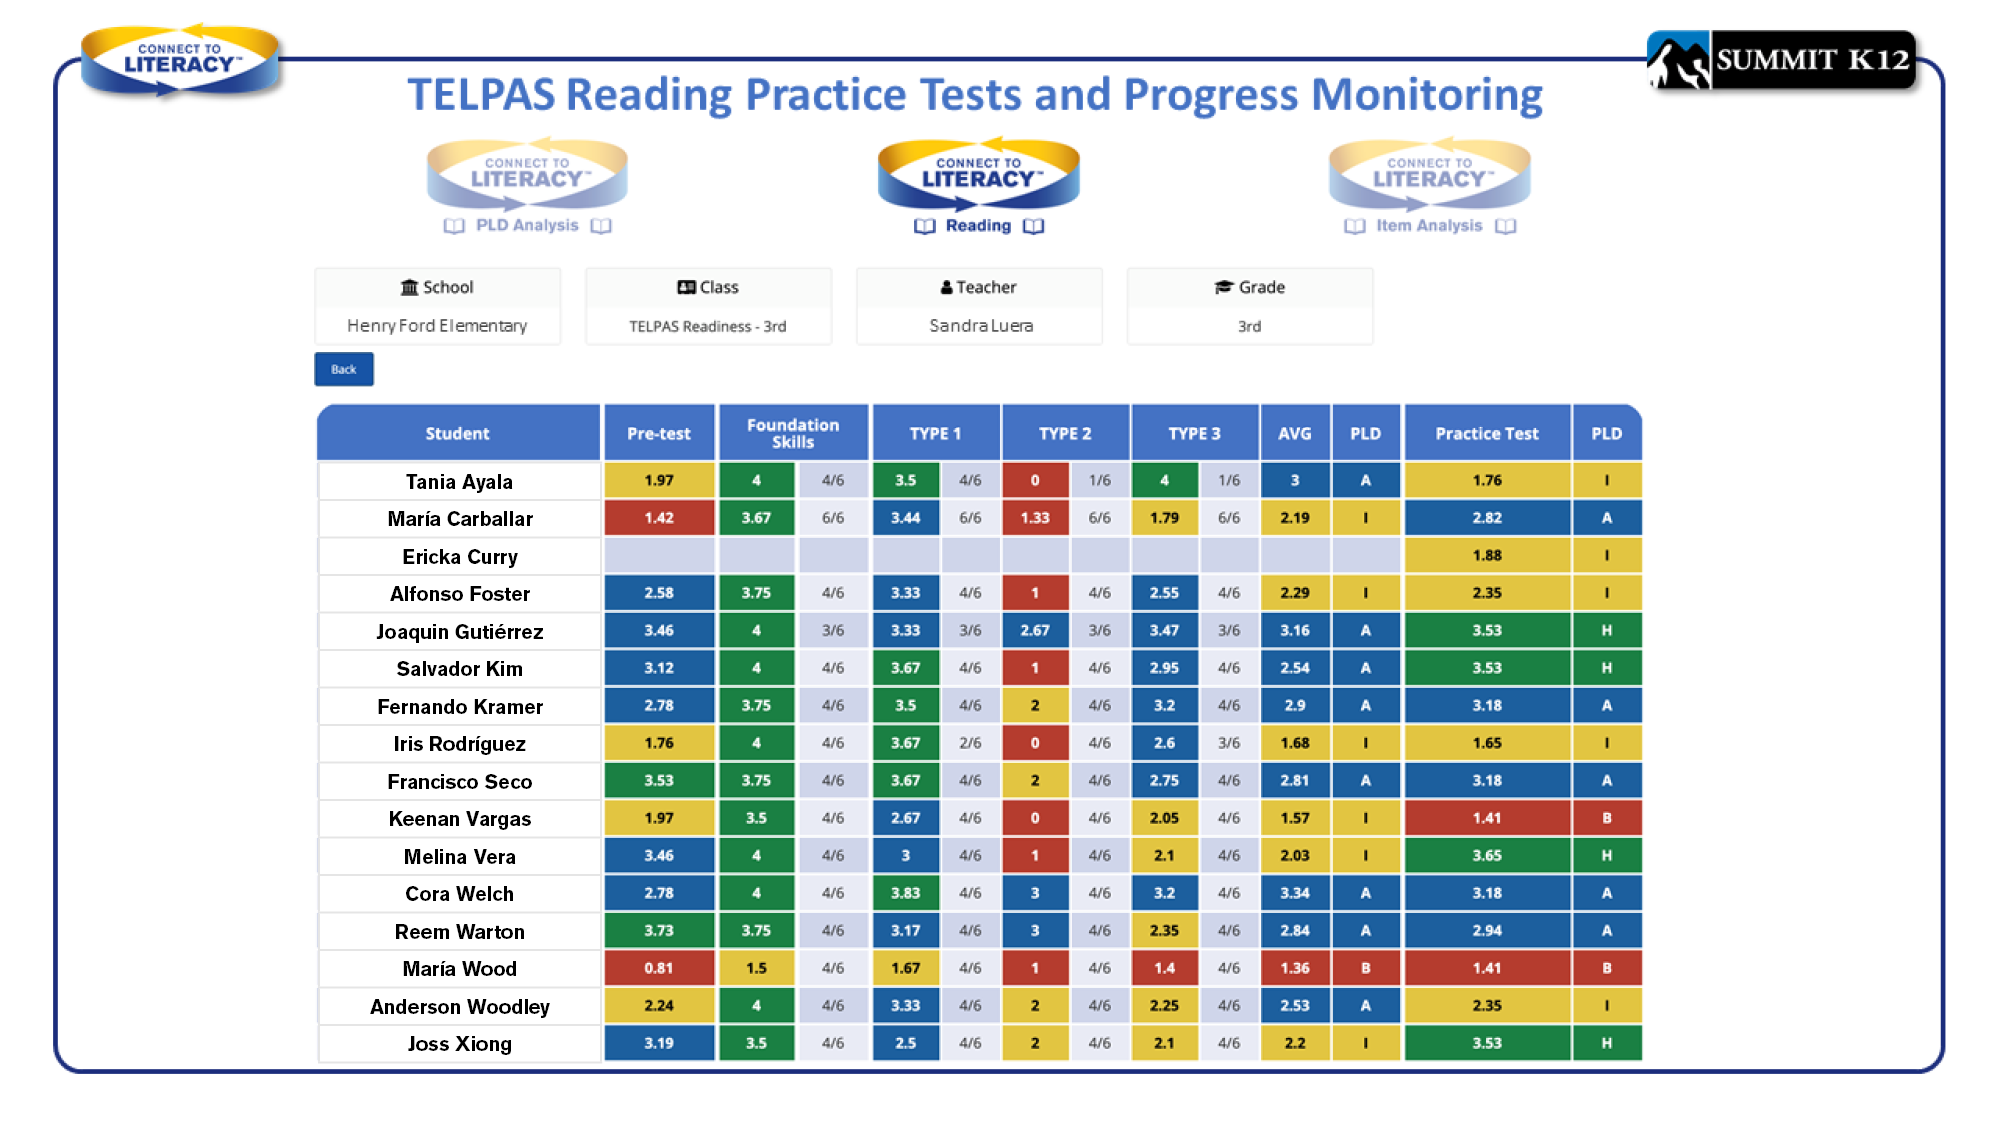 Practice Tests and Progress Monitoring